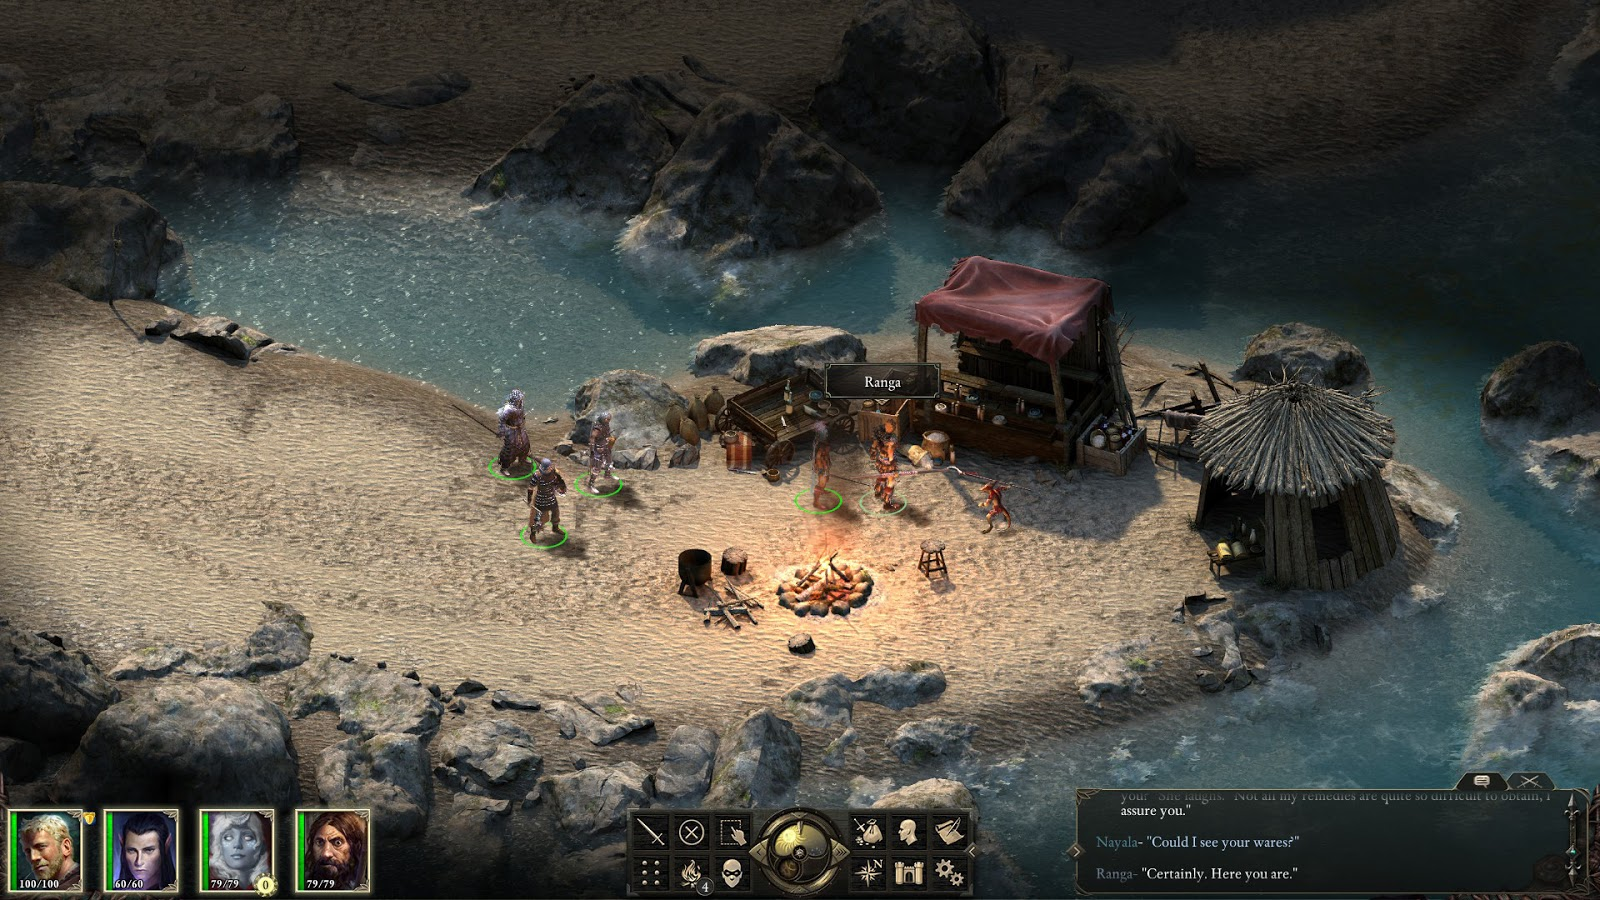 The Nocturnal Rambler Pillars of Eternity Review